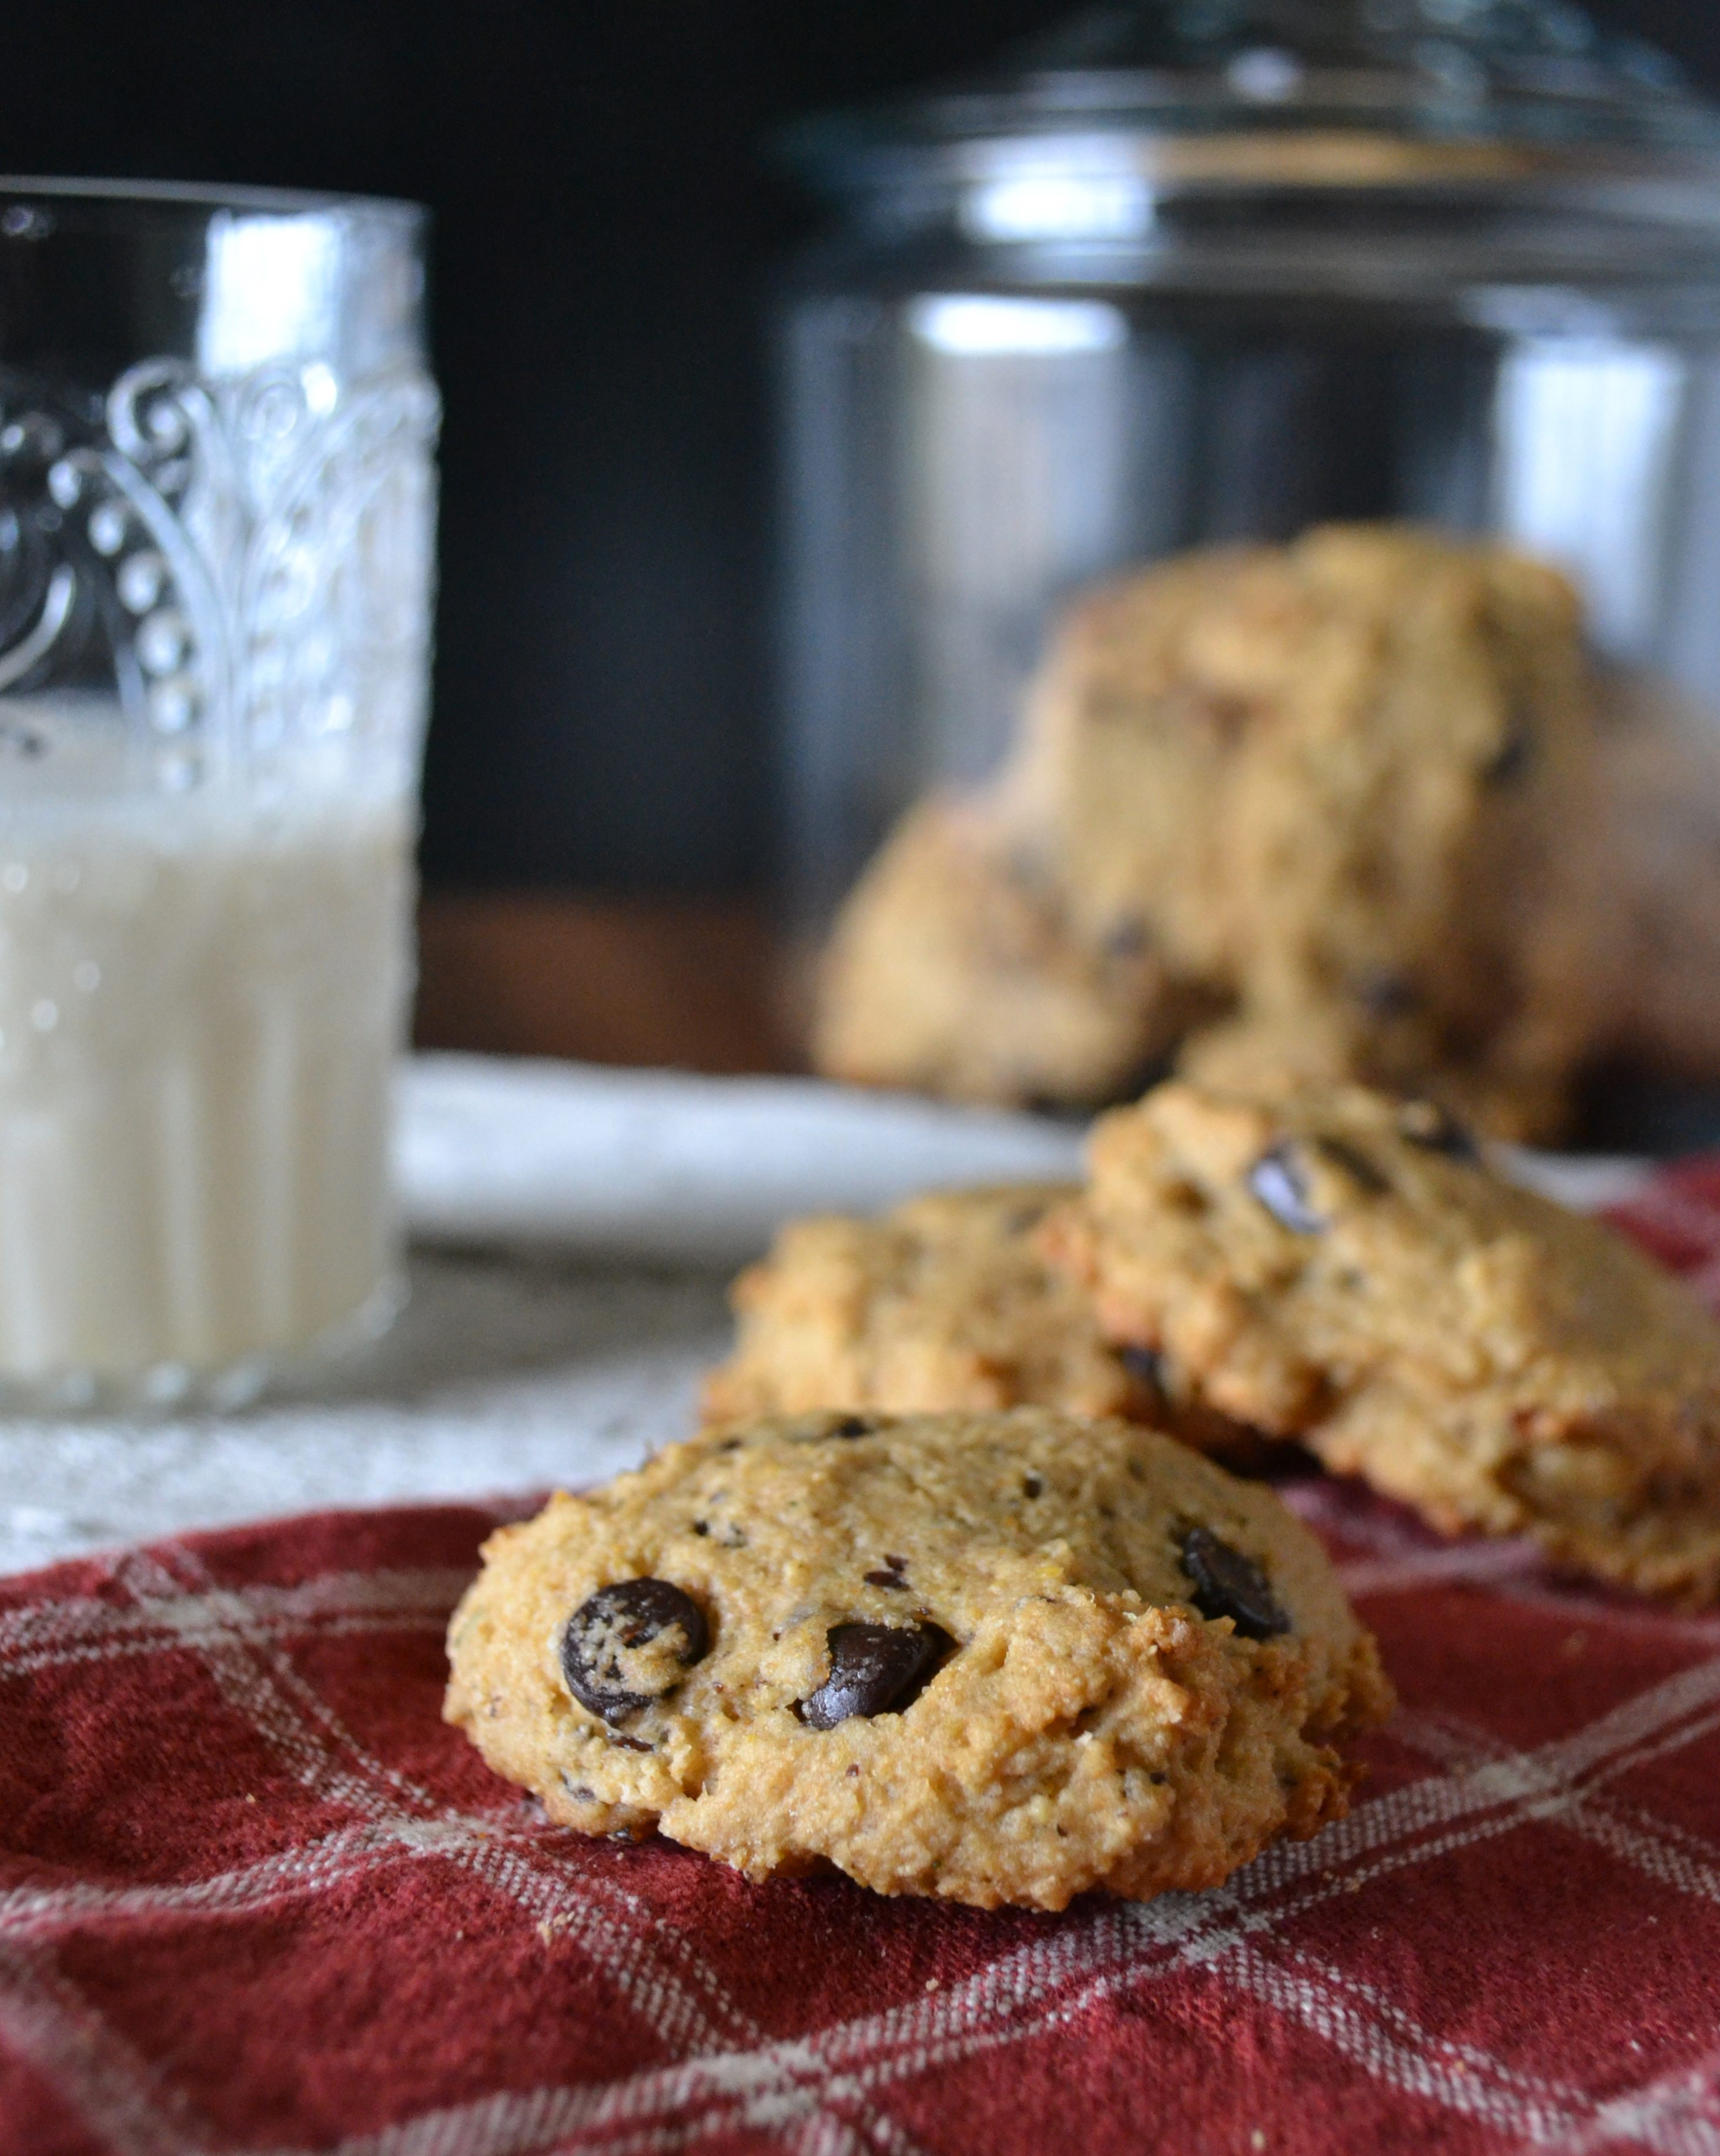 Grapefruit & Anise Chocolate Chip Cookies by An Unrefined Vegan